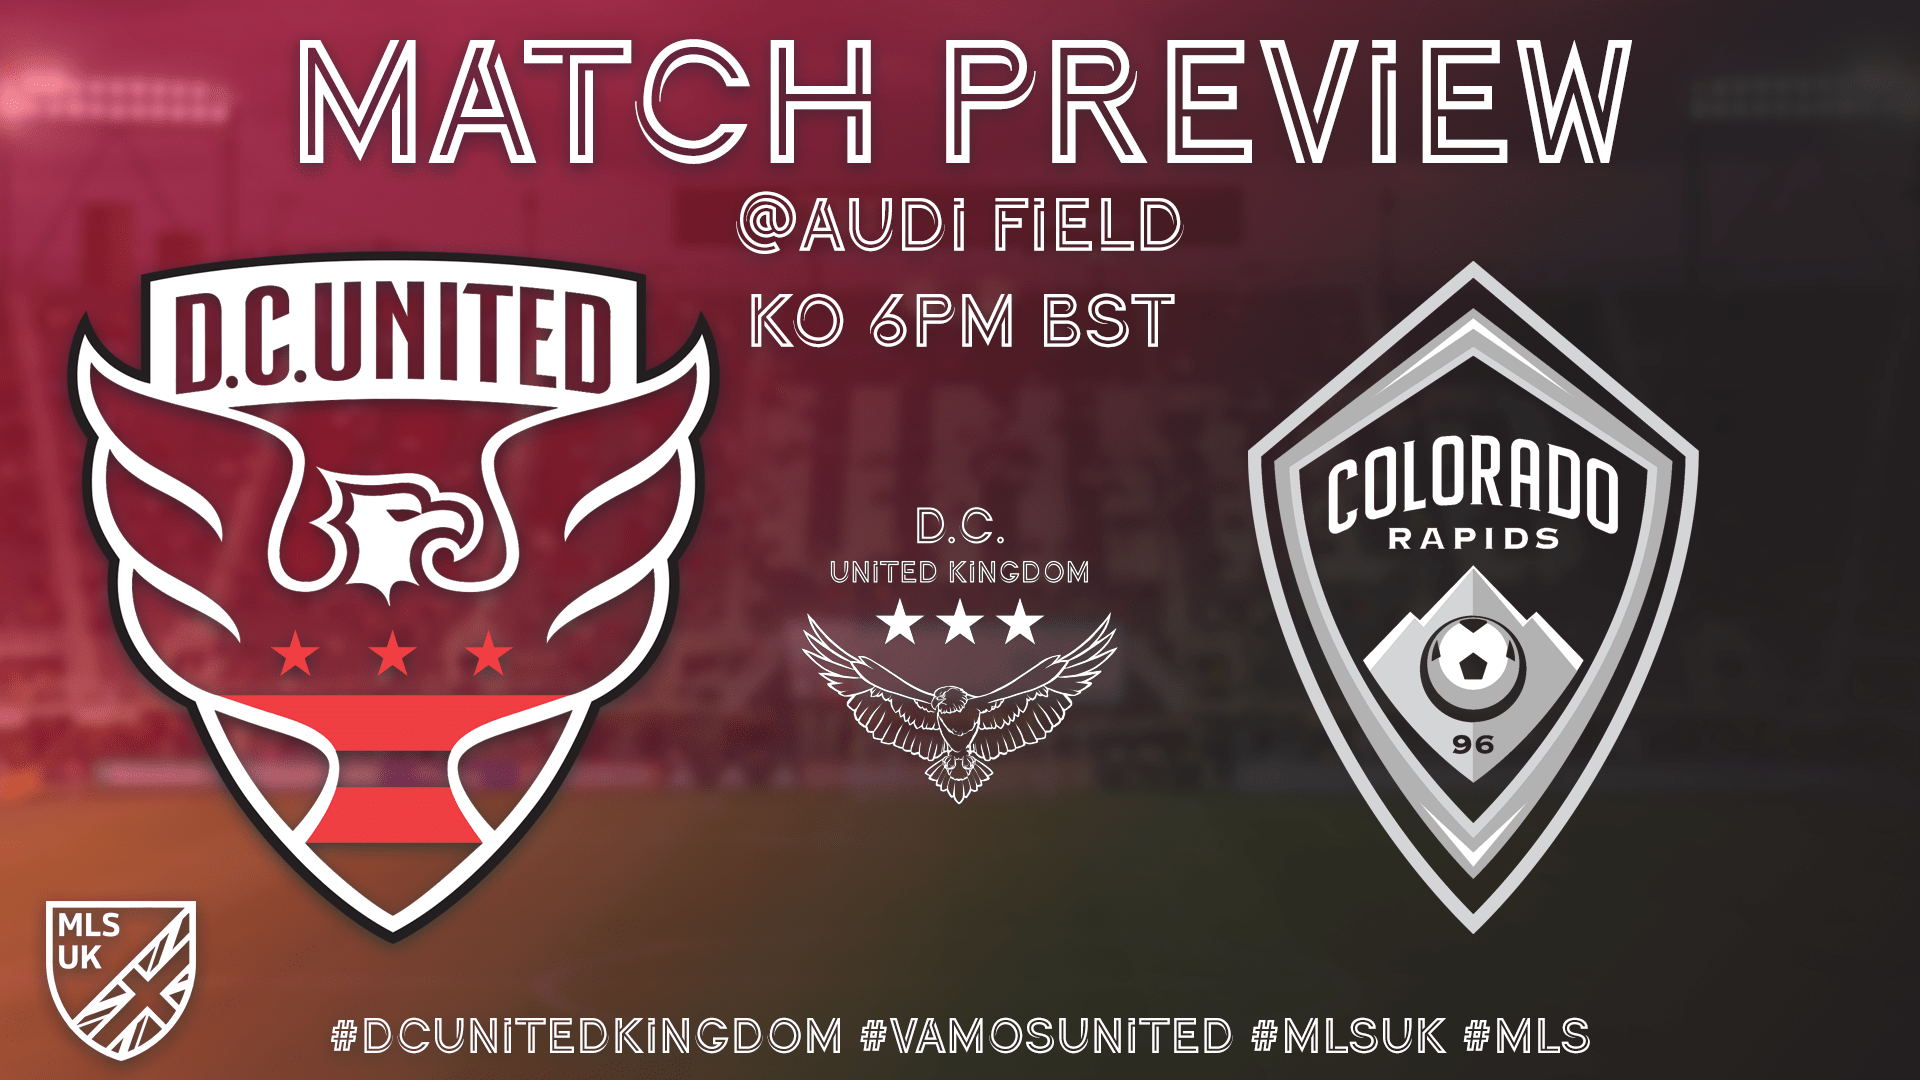 Match Preview: DC United vs Colorado Rapids